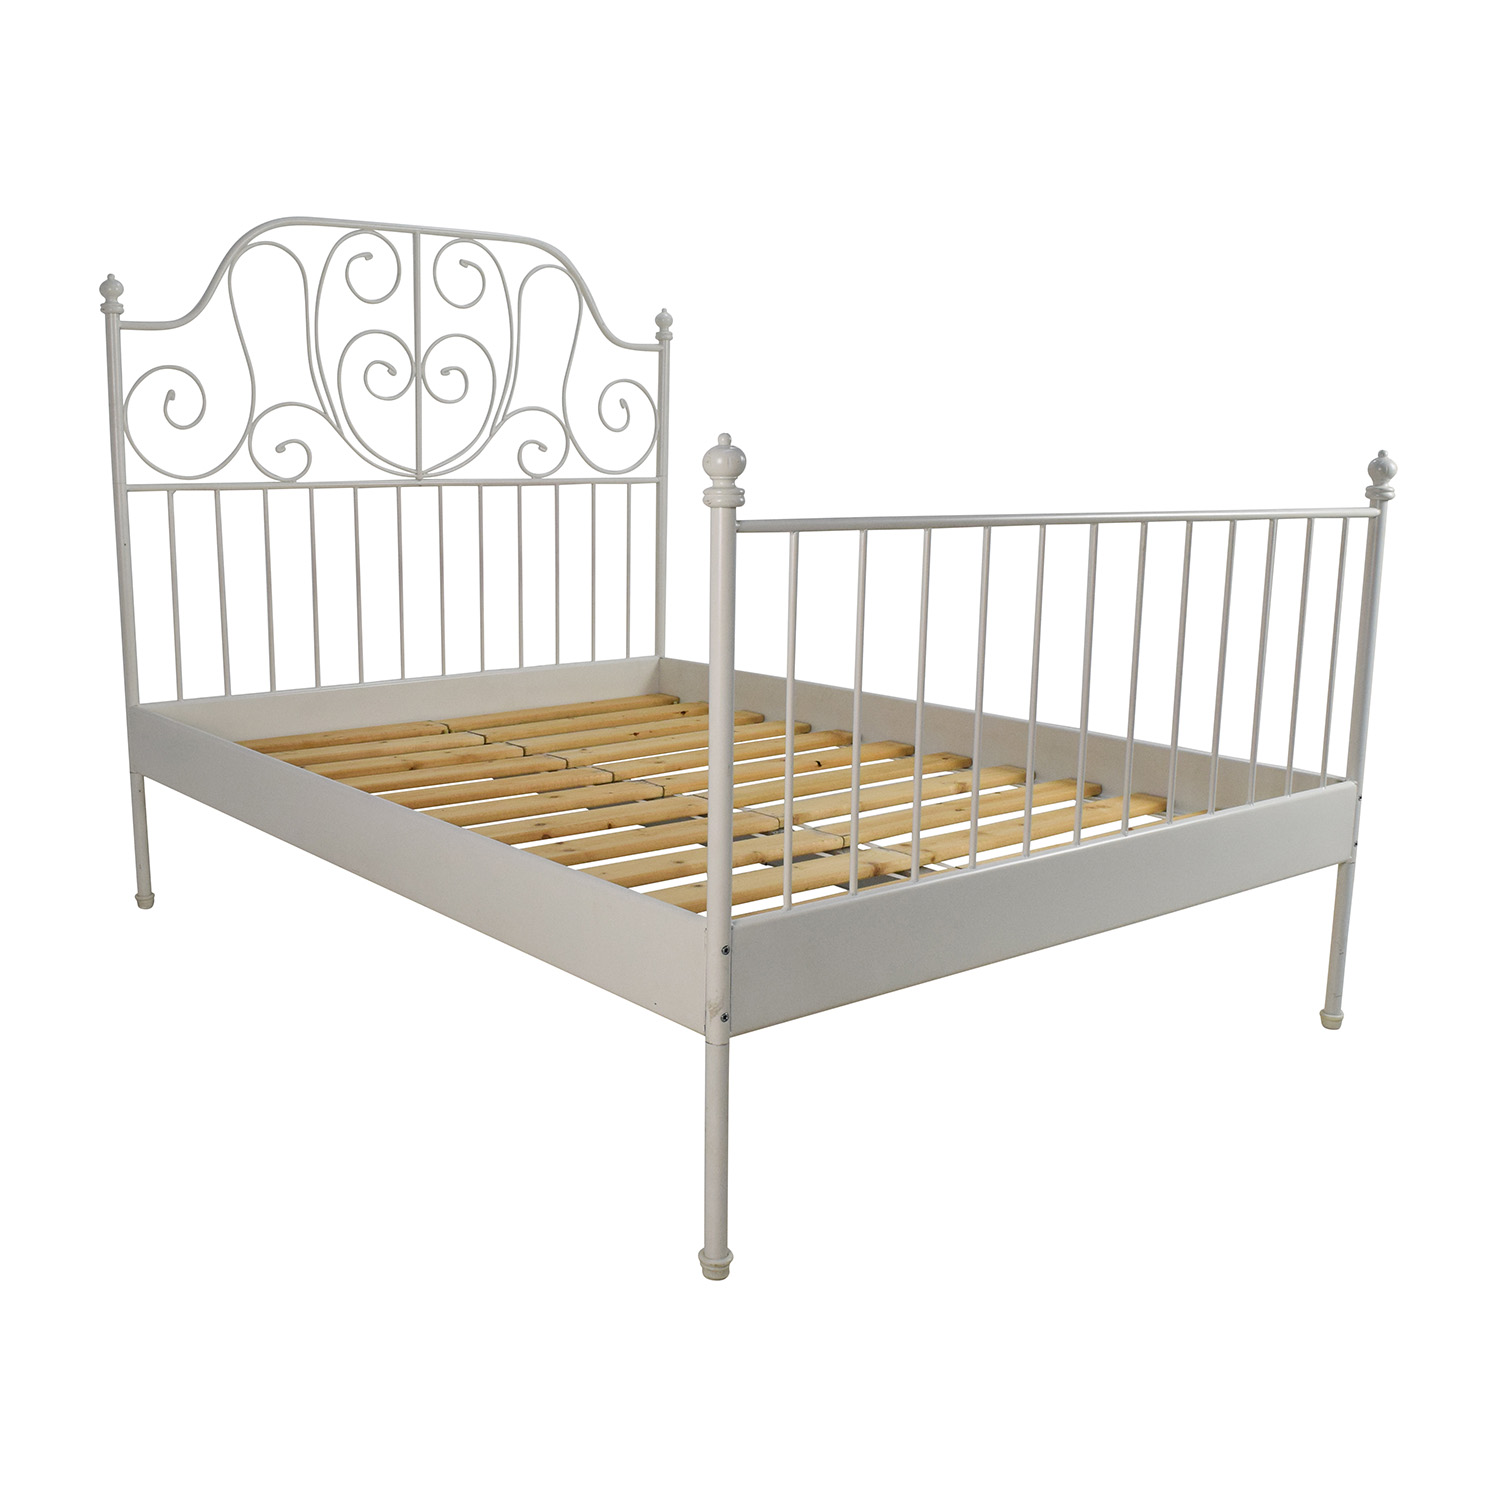 King queen double beds frames bed frames full platform for Queen size bed ikea